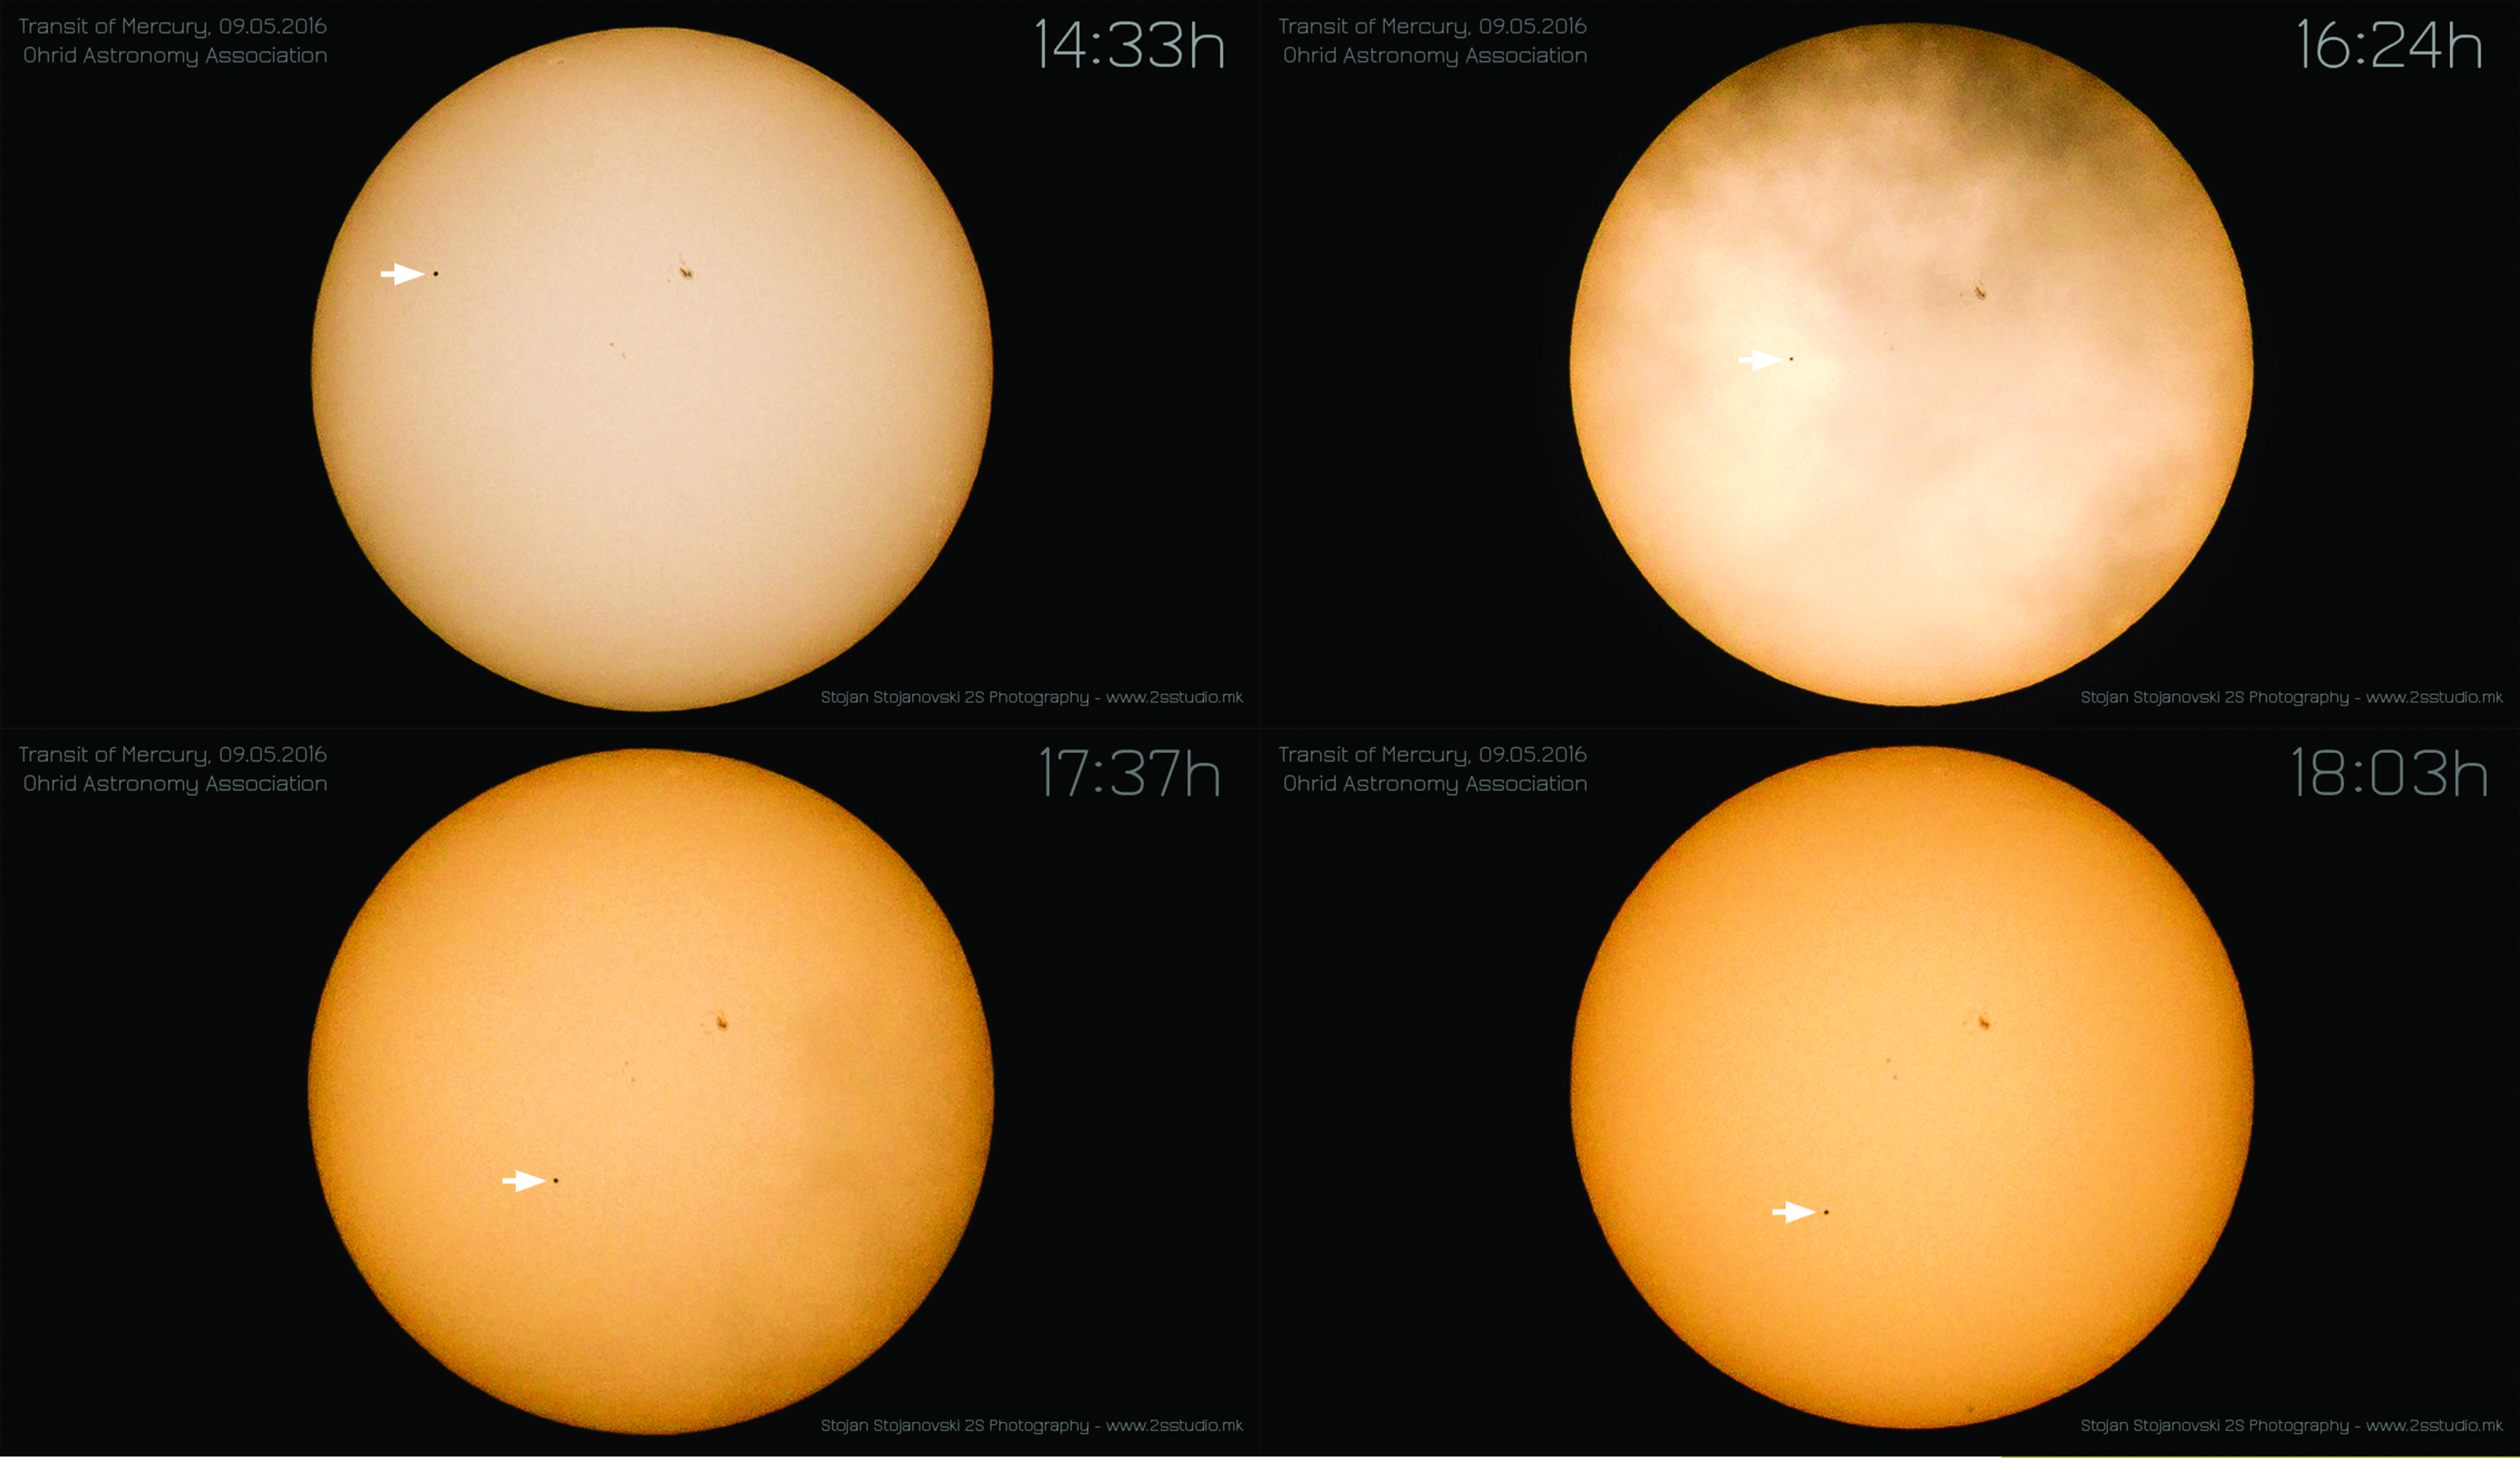 2016 Mercury Transit from Macedonia